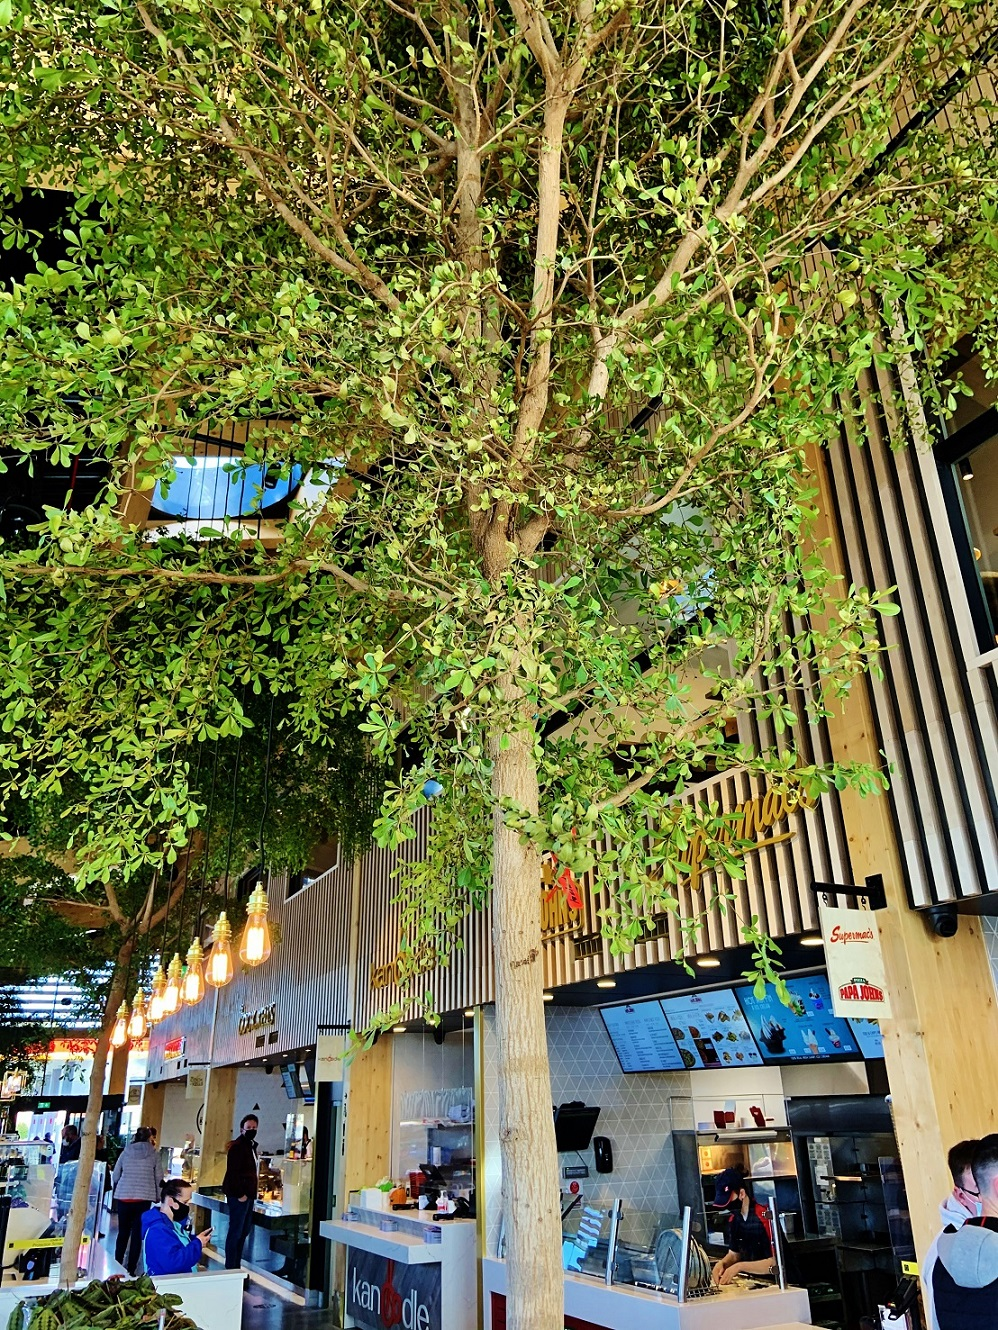 Irland Shopping Center Bucida Baum im Raum